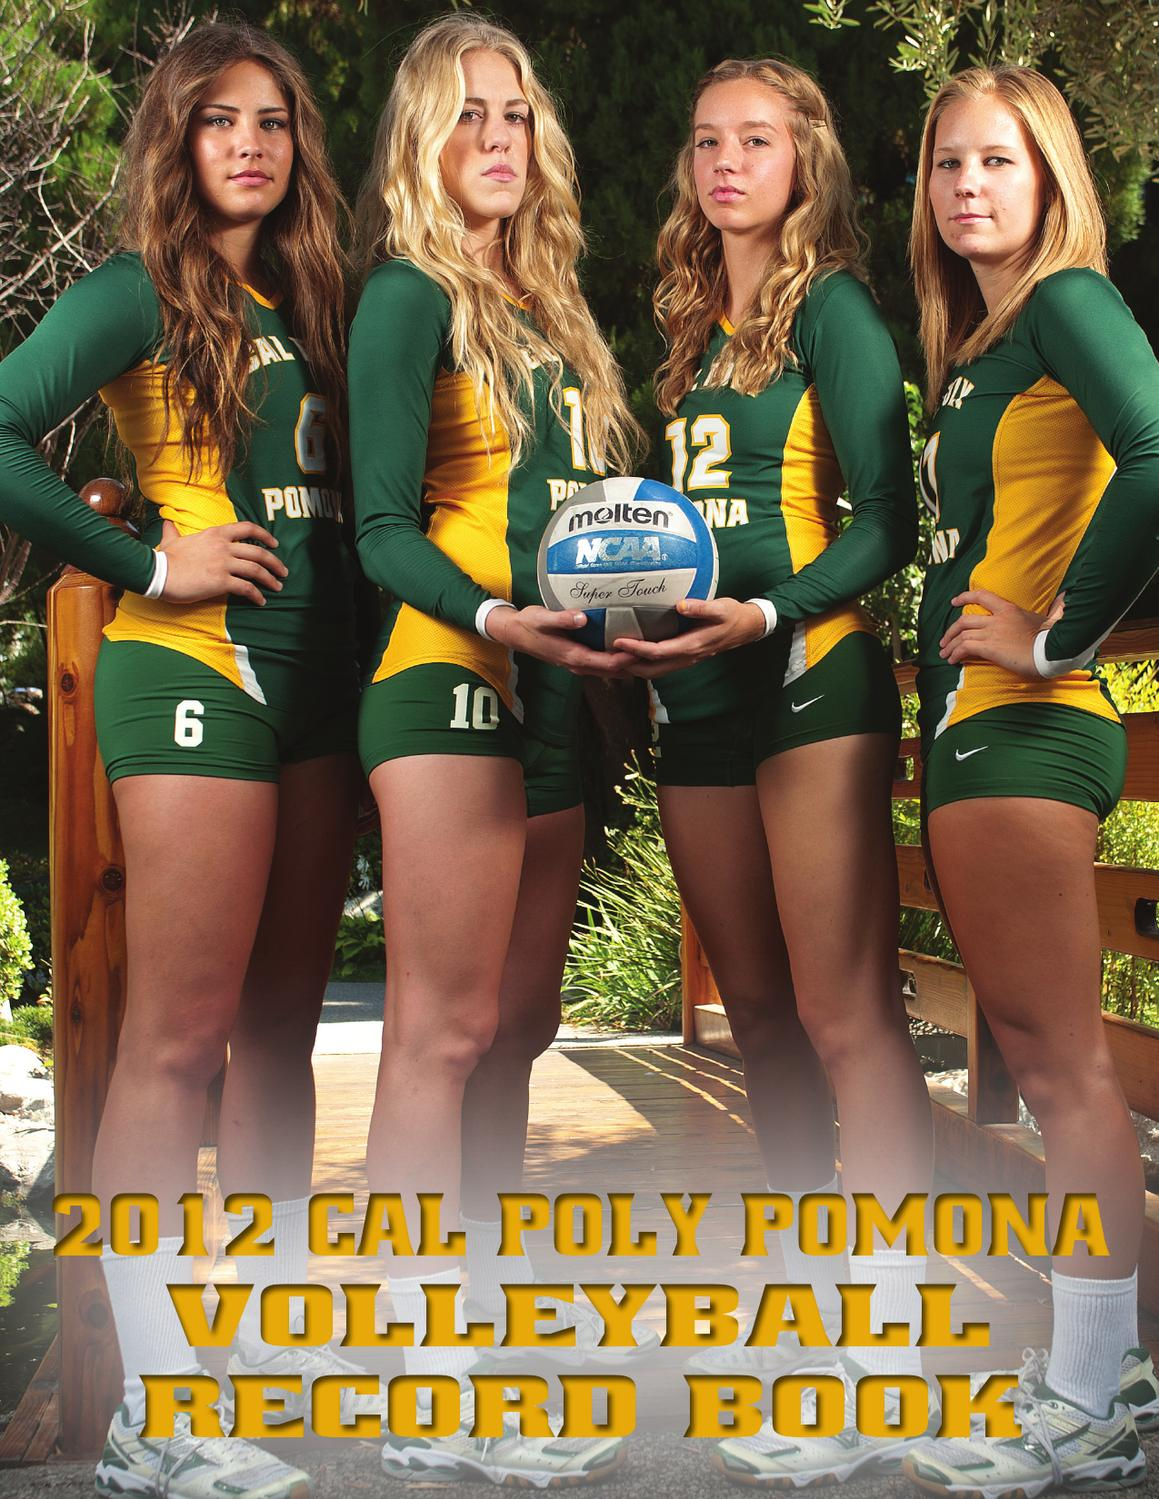 2012 Cal Poly Pomona Volleyball Record Book By Billy Bronco Issuu